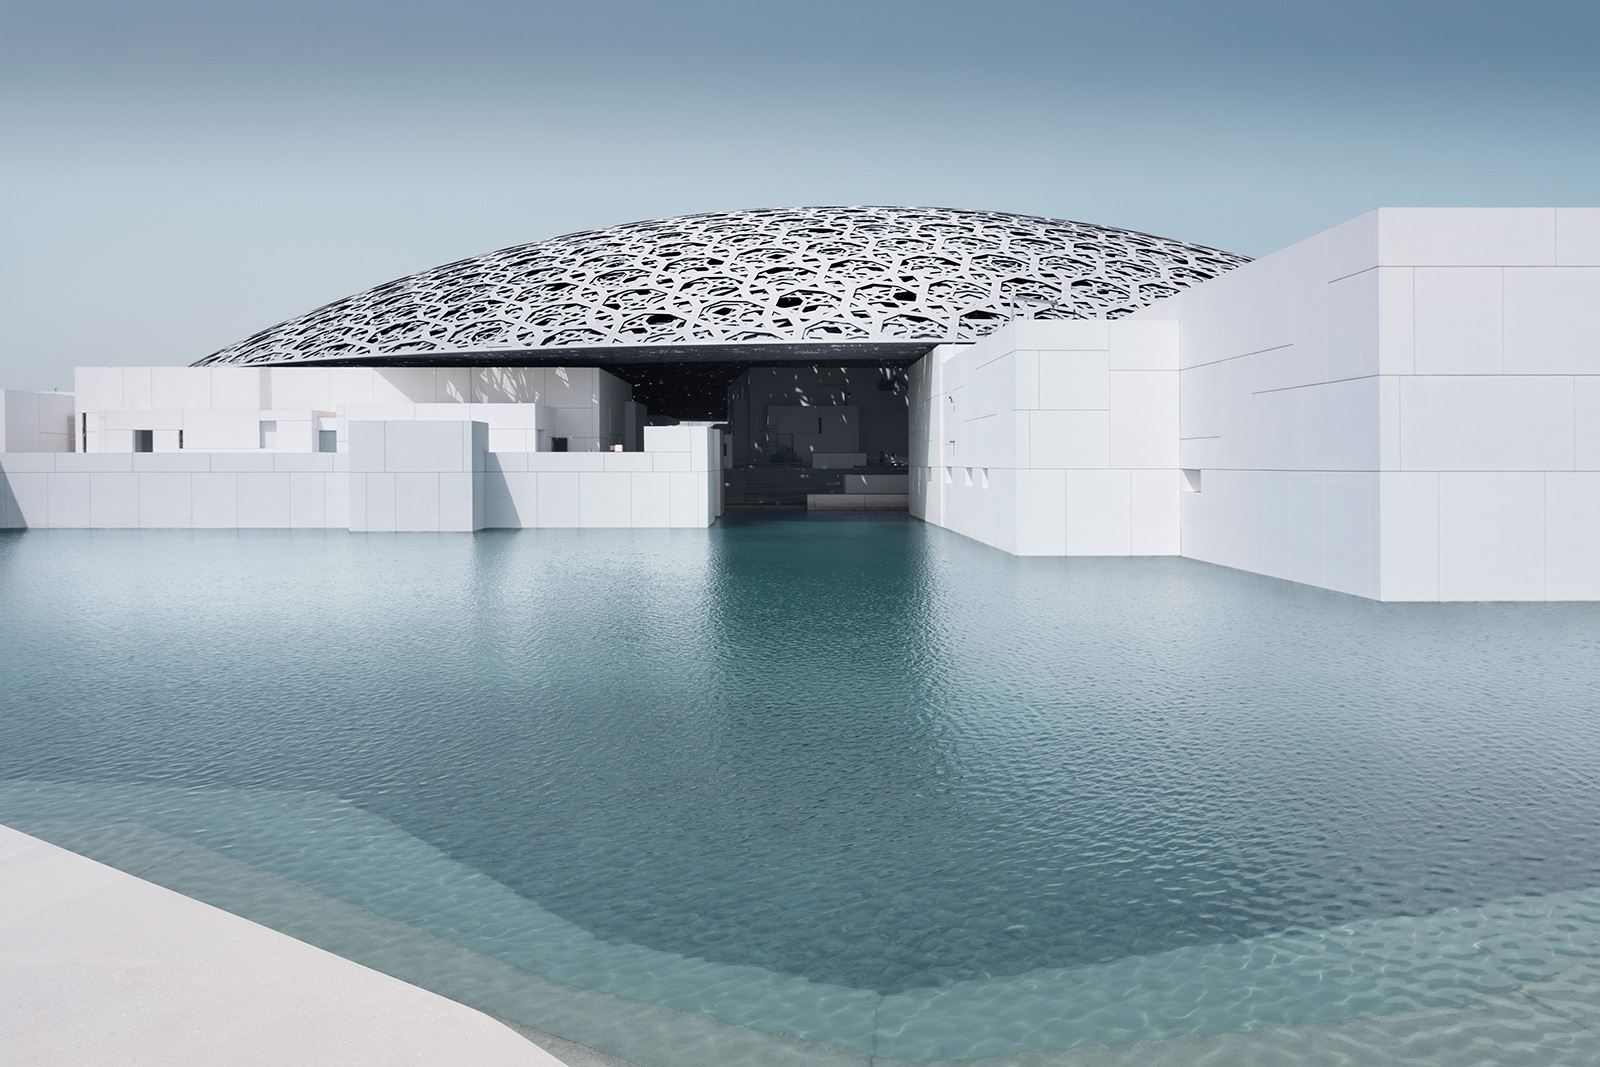 The Louvre Abu Dhabi announces opening date for November 2017